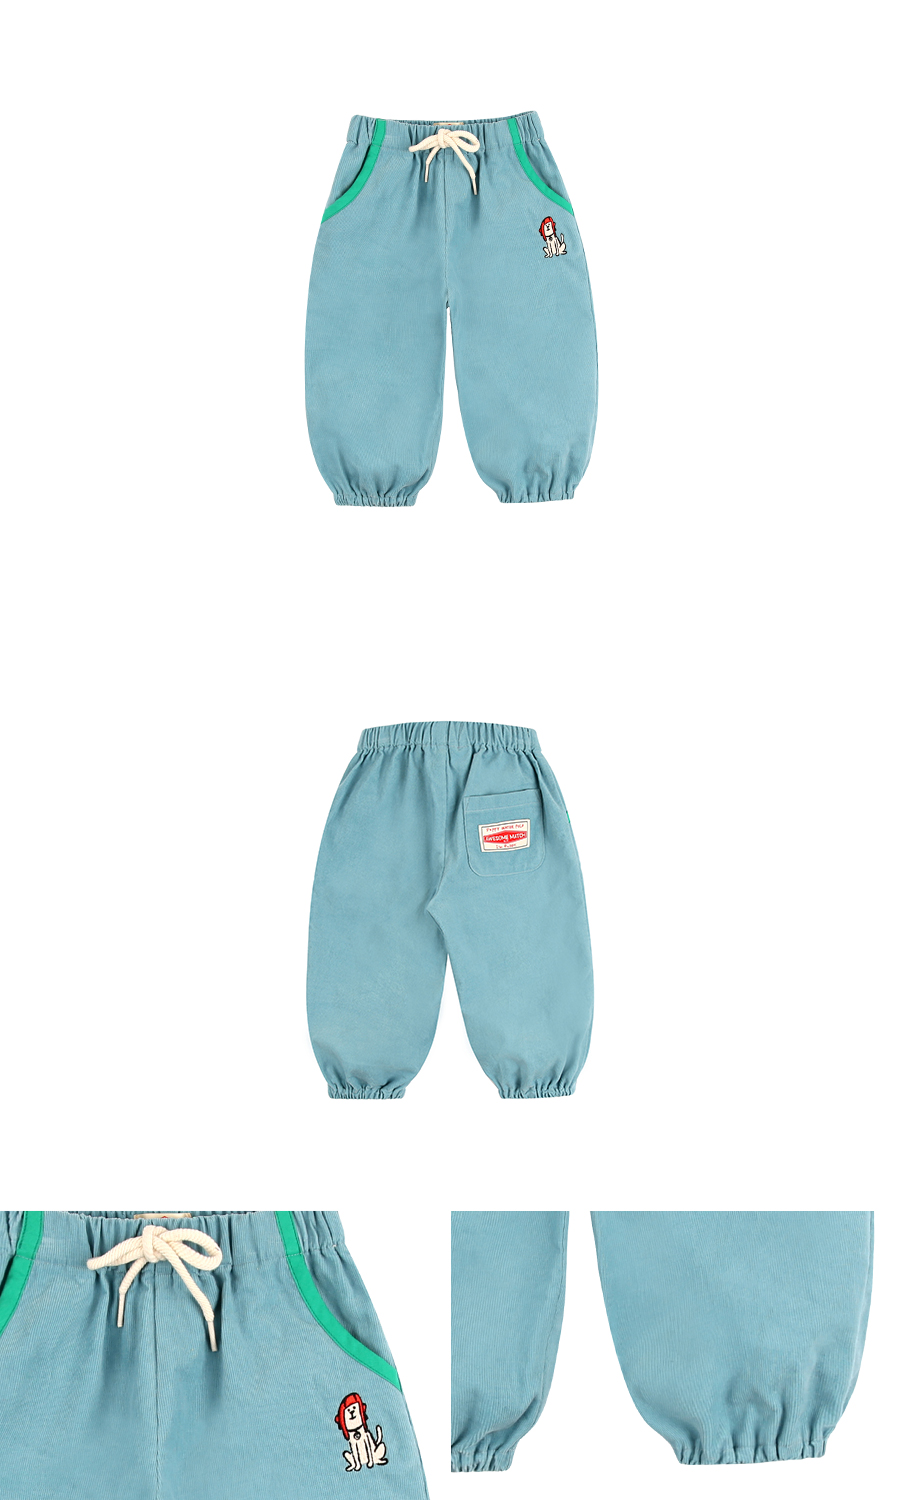 Puppy baby corduroy pants 상세 이미지